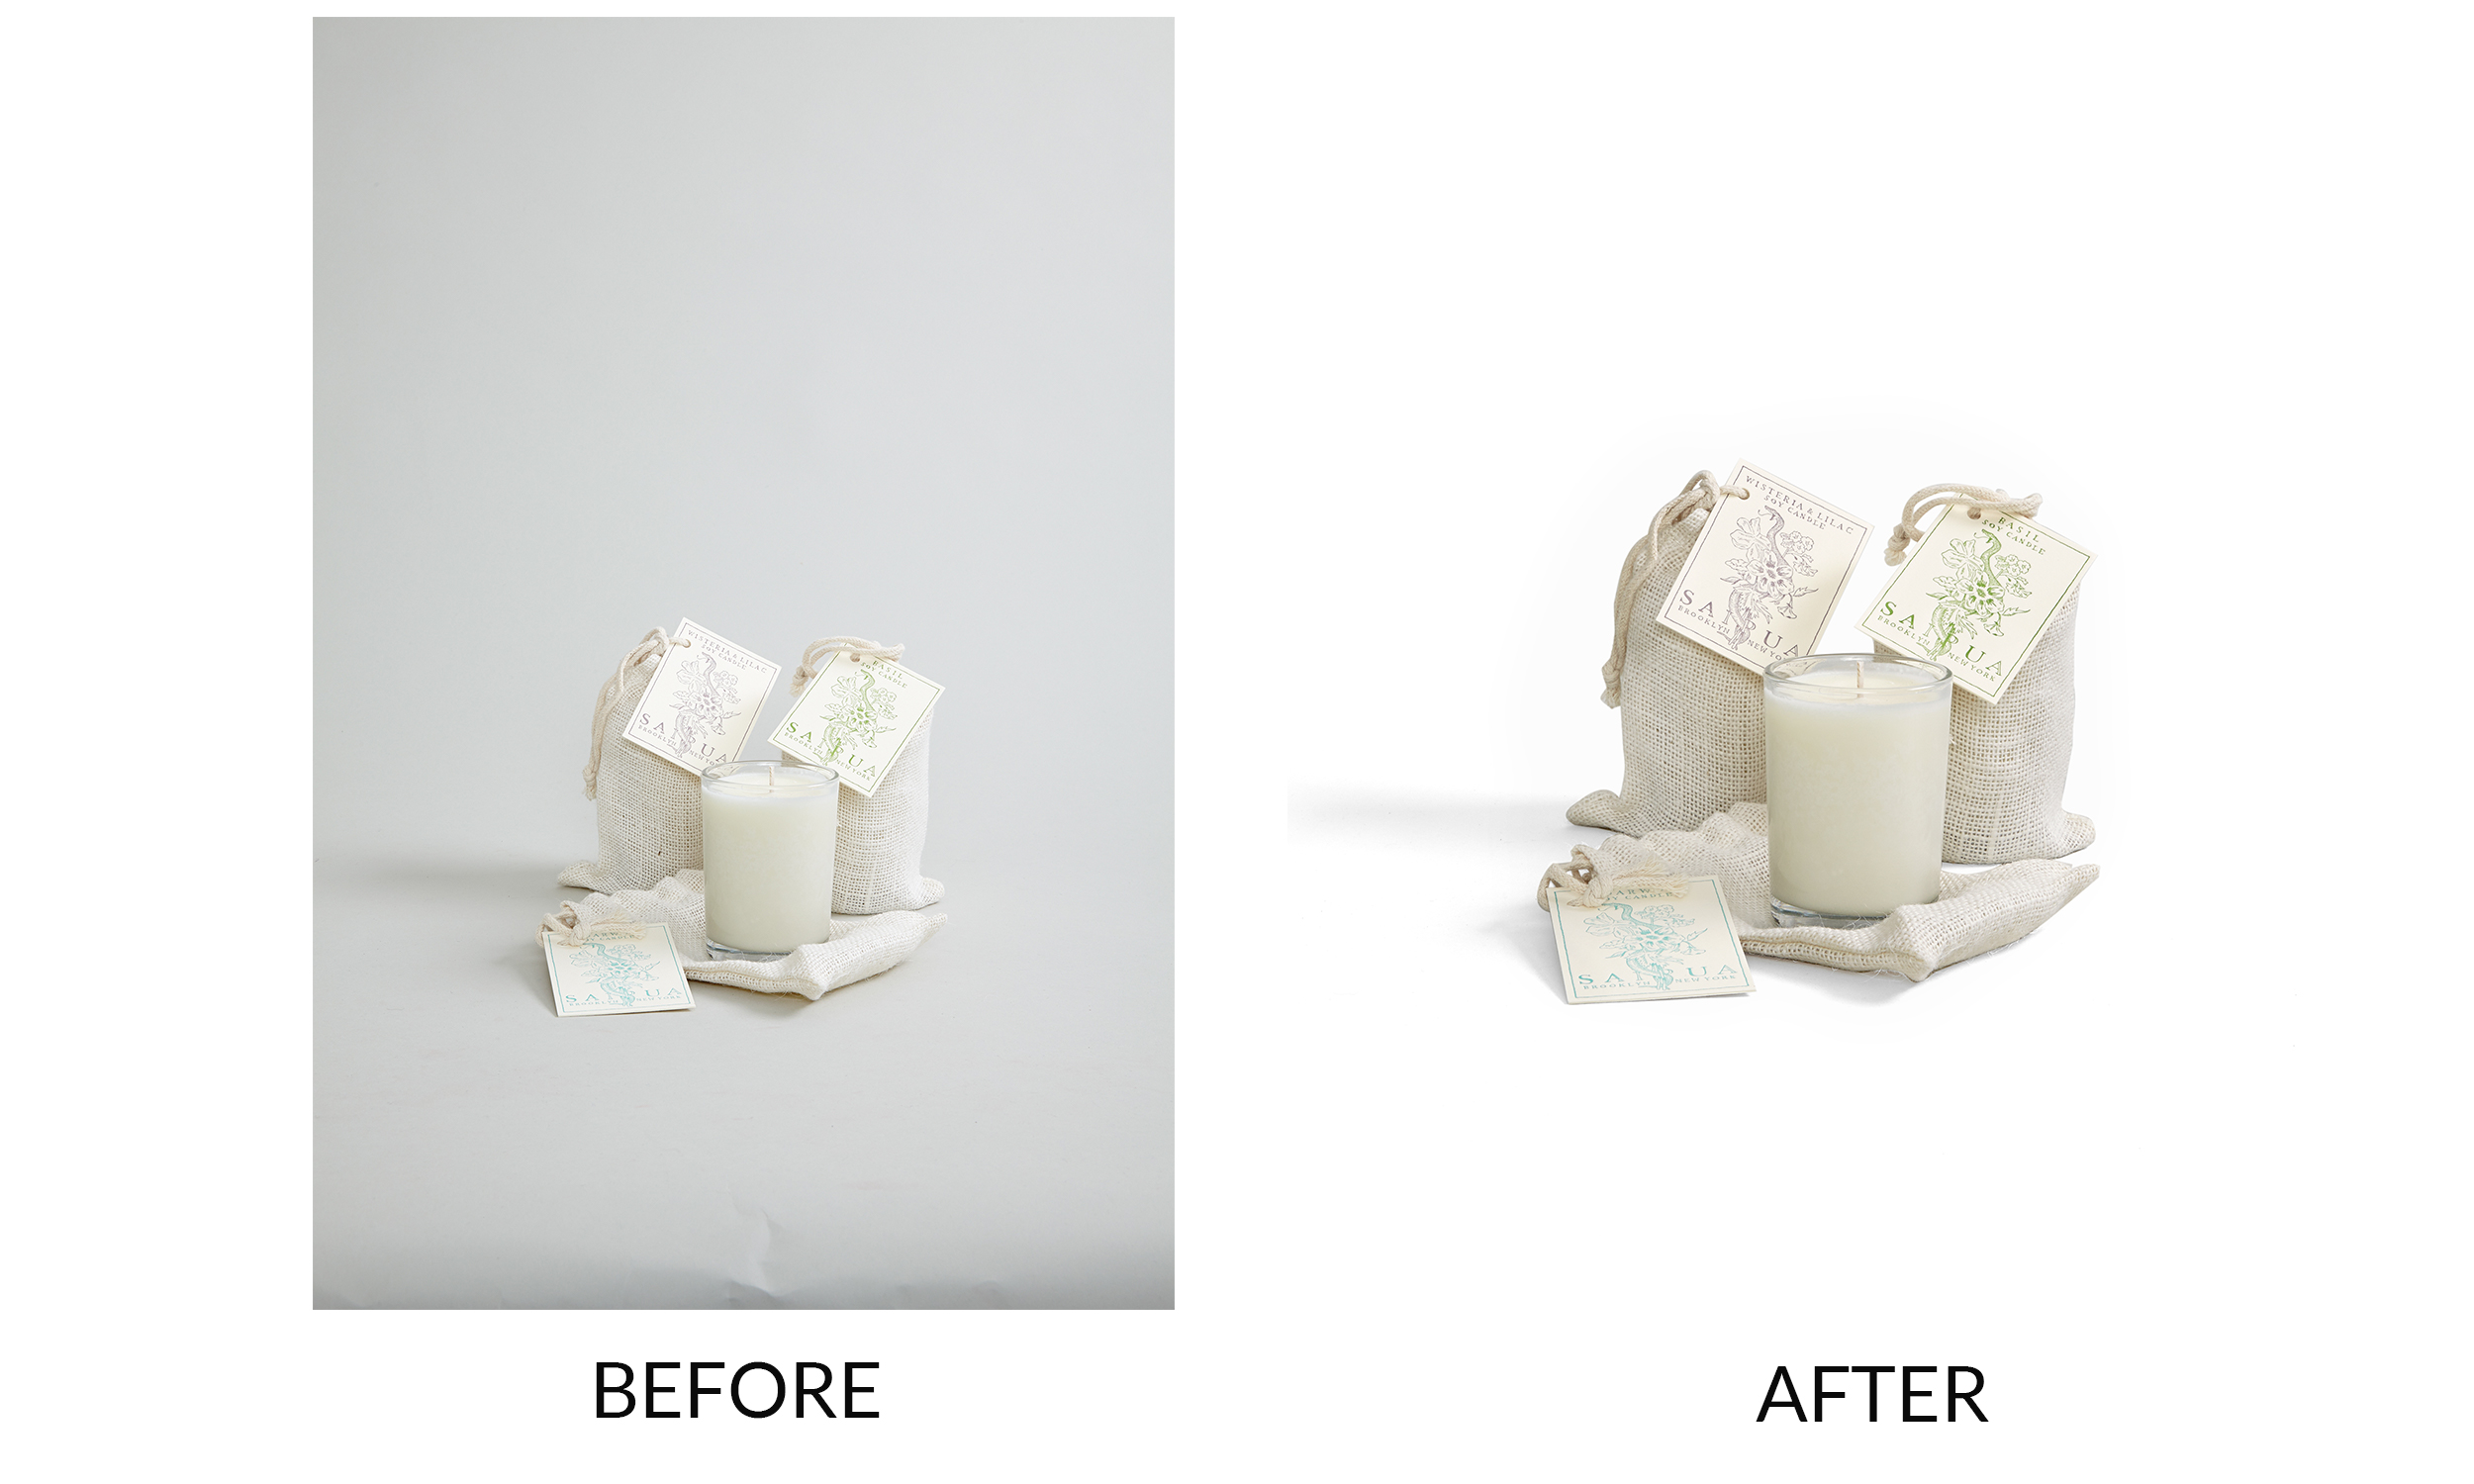 Squarespace_ACheng_BeforeAfter_01.jpg